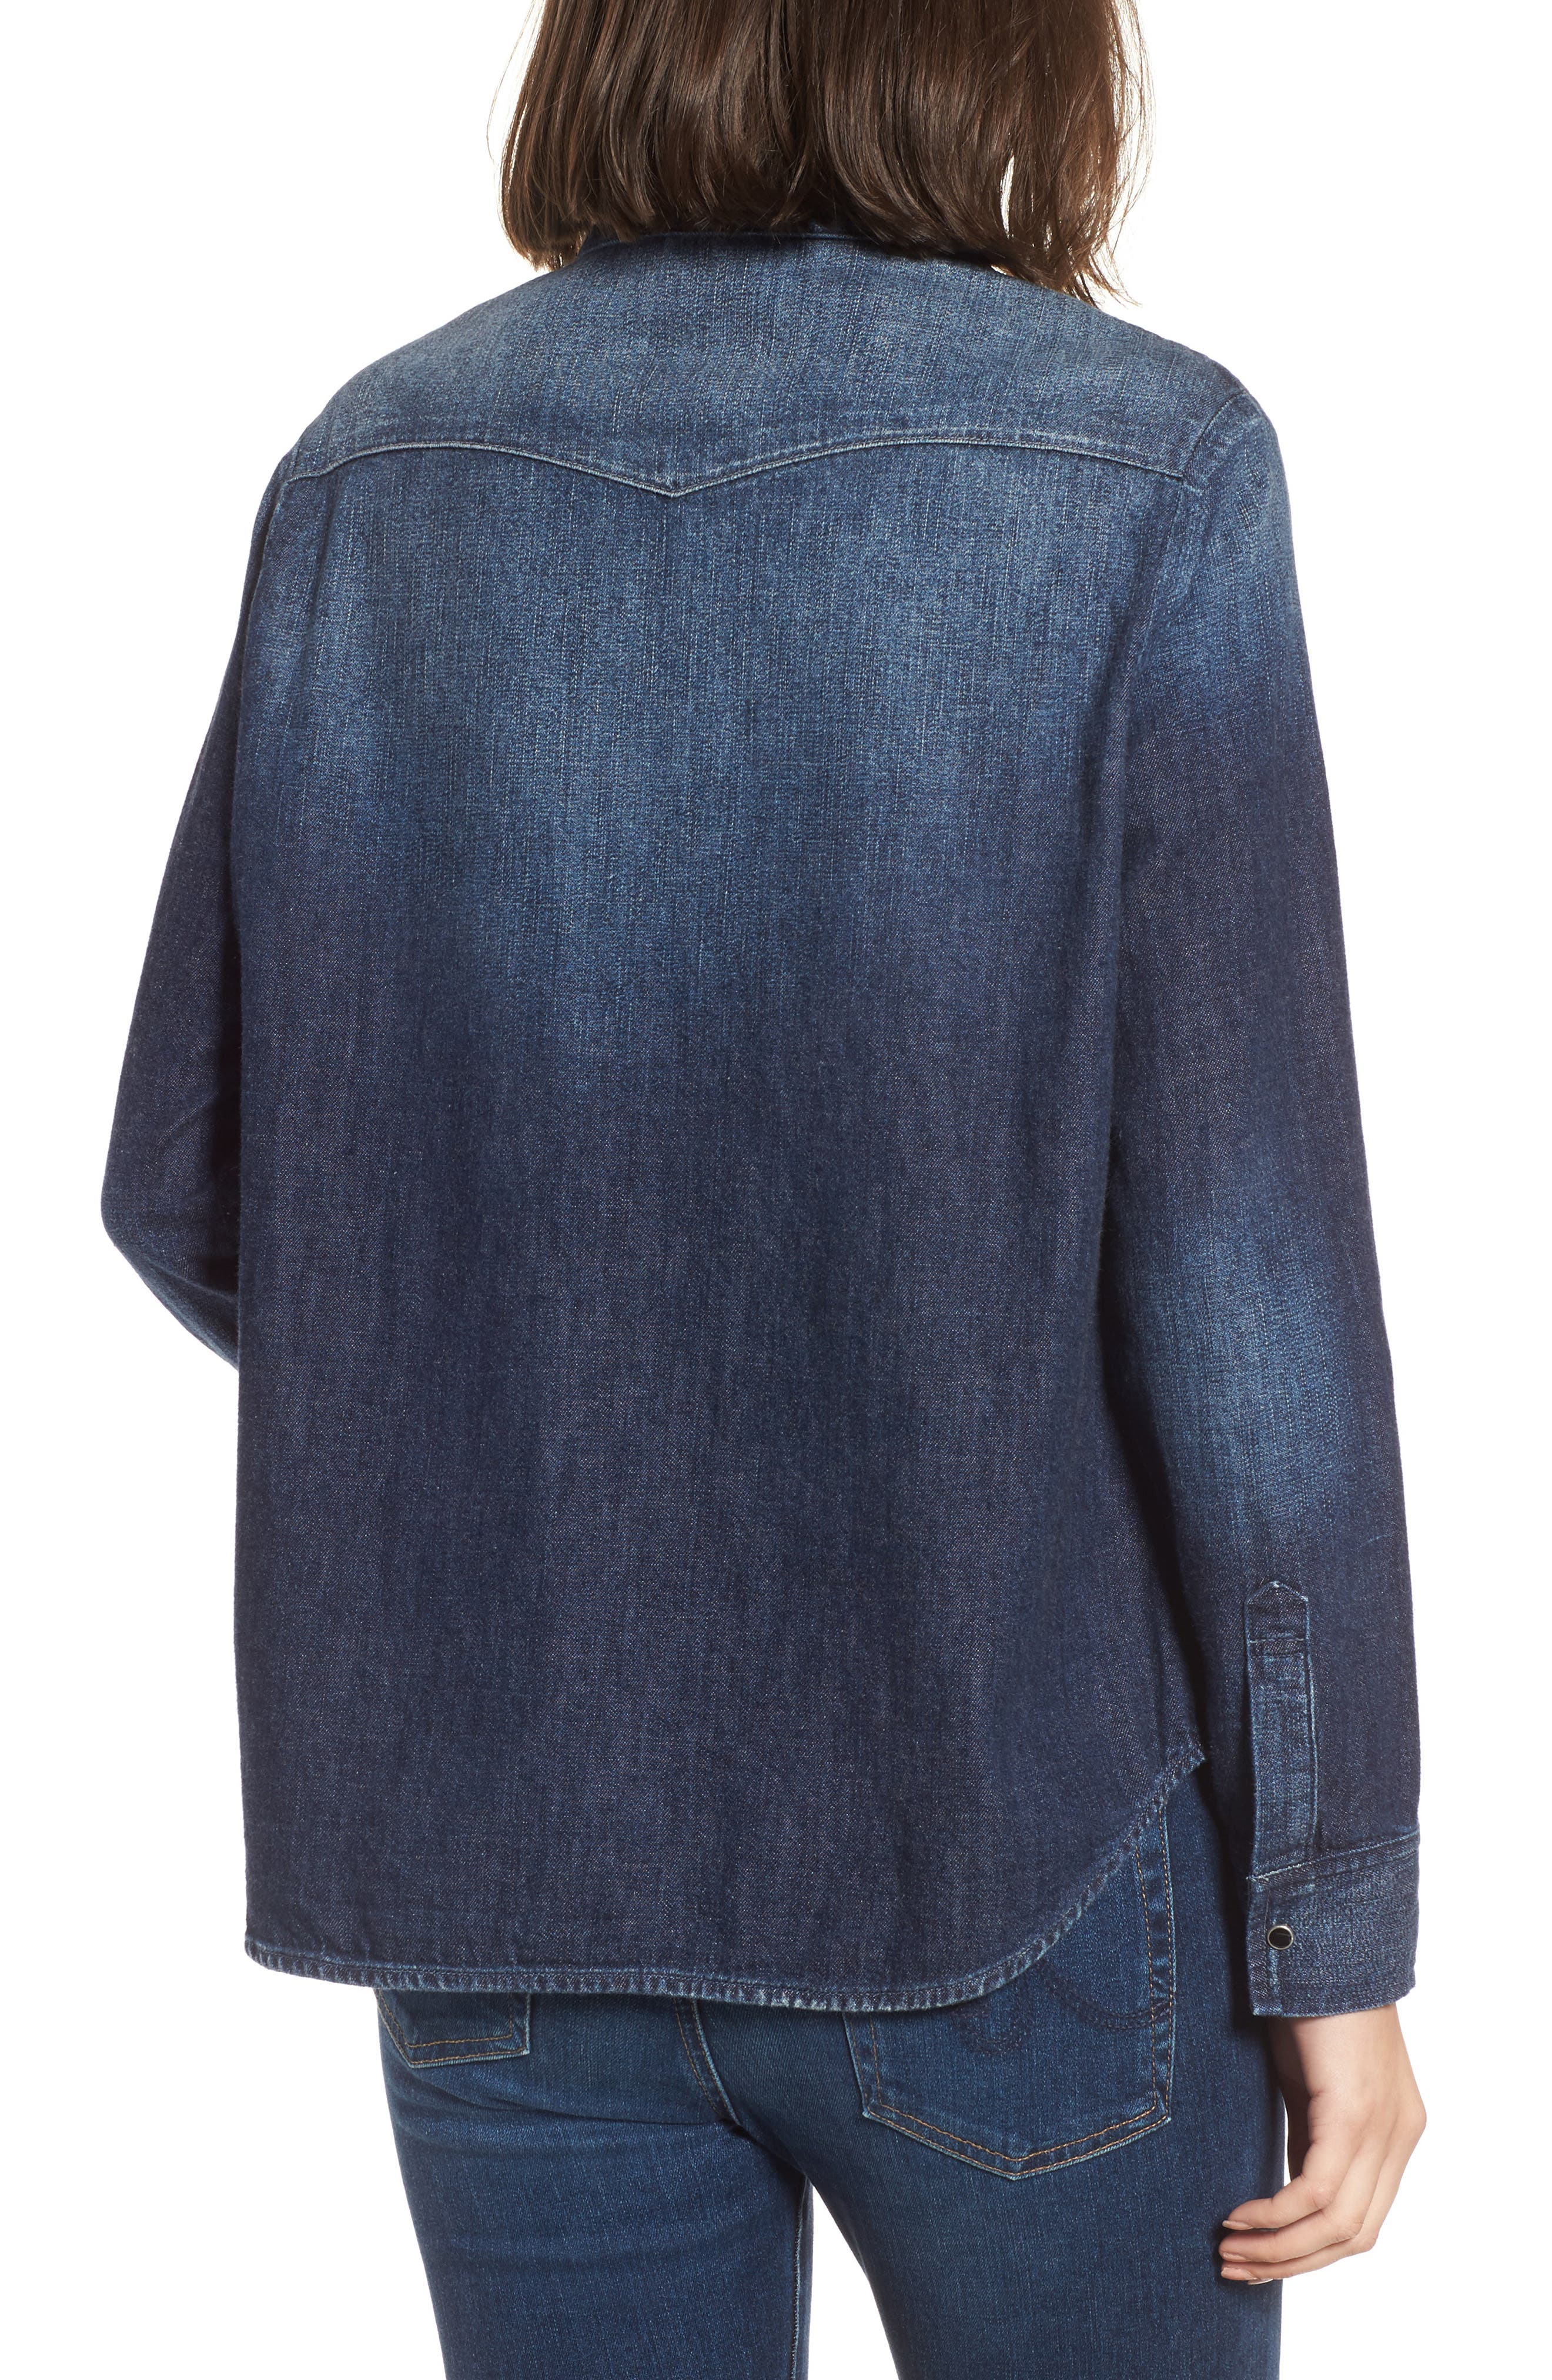 Deanna Denim Shirt,                             Alternate thumbnail 2, color,                             Timeless